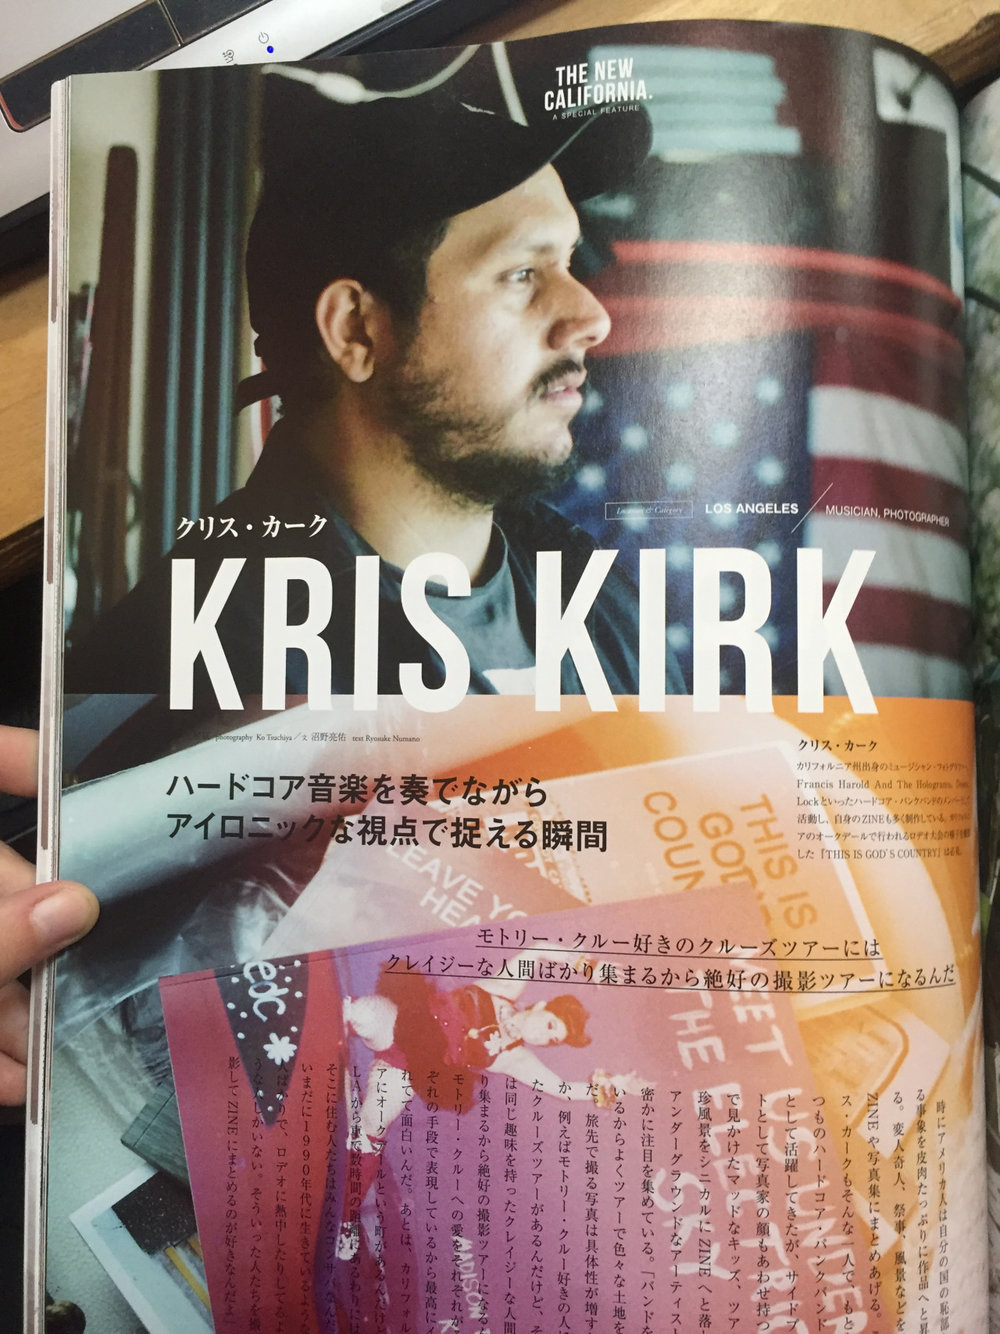 Kris Kirk in the new issue of Eyescream Japan¡¡